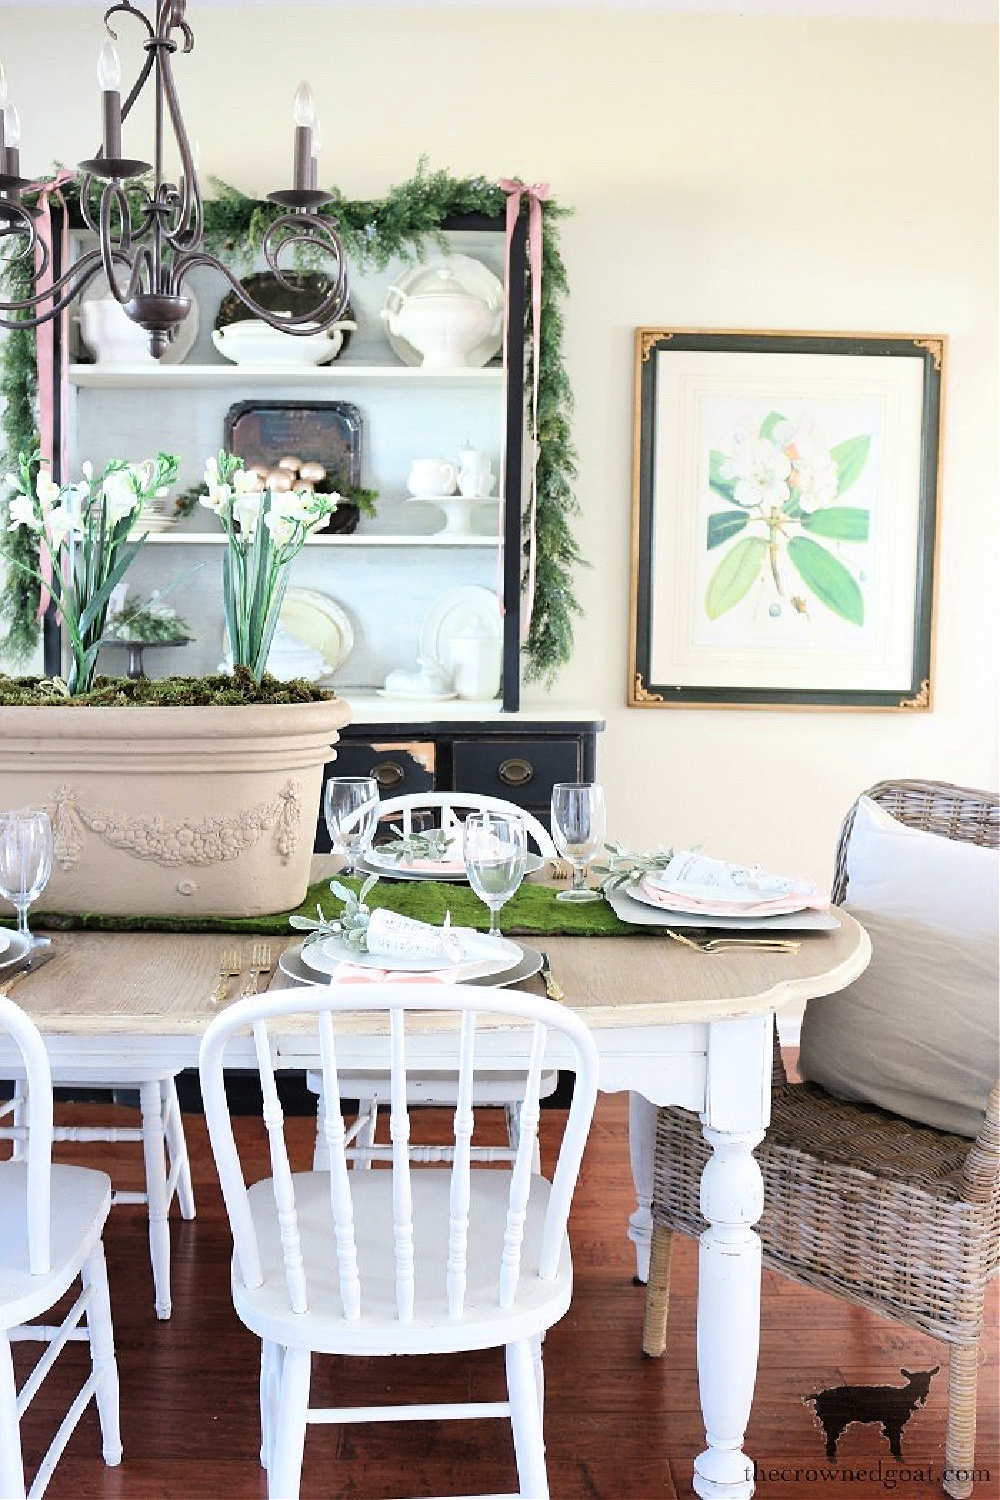 Prepare For the Holidays Now With These Simple Dining Room Tablescape Ideas-The Crowned Goat